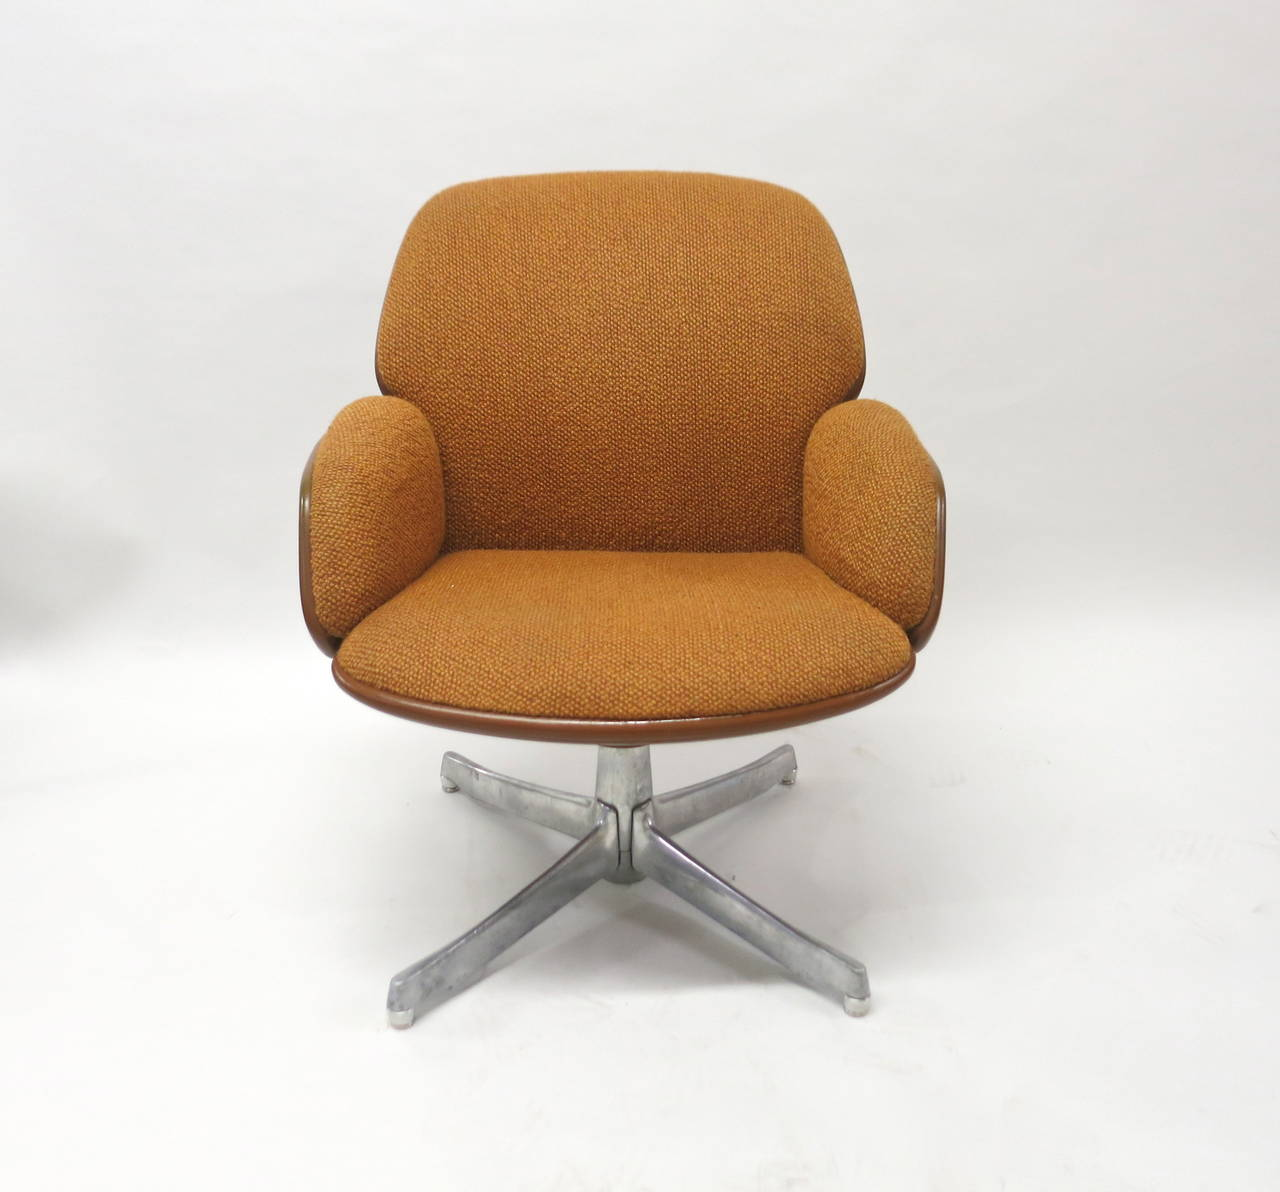 steelcase sofa platner new dimension factory los angeles warren furniture arm daksh image of dining side chair